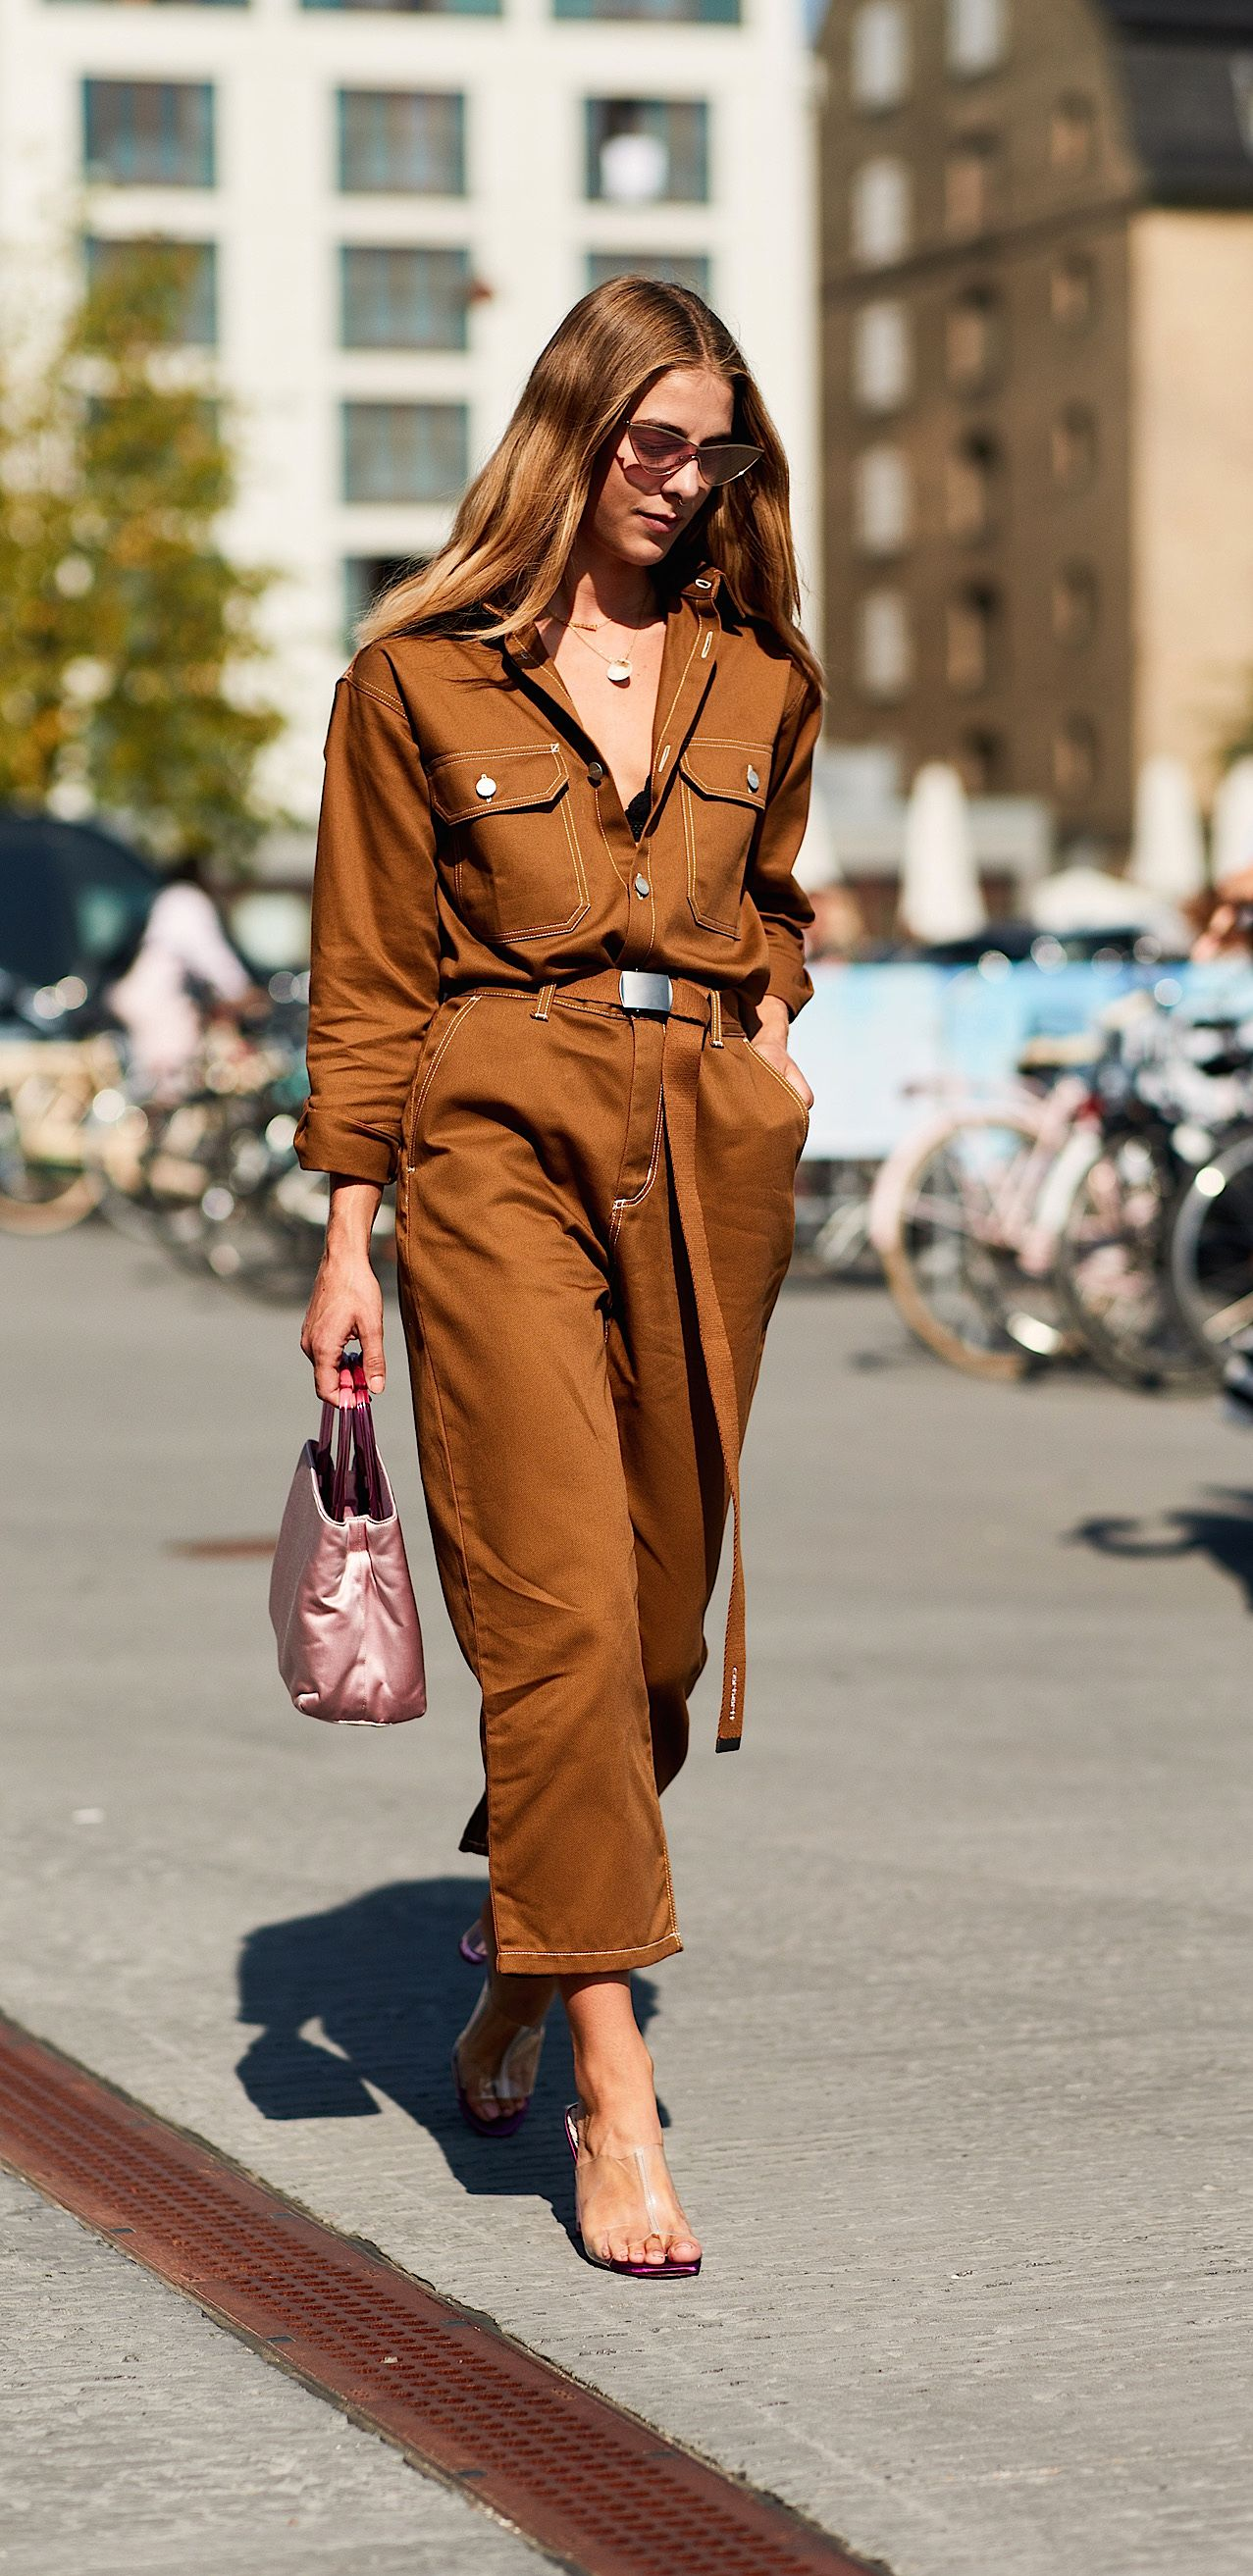 A woman wearing a brown jumpsuit